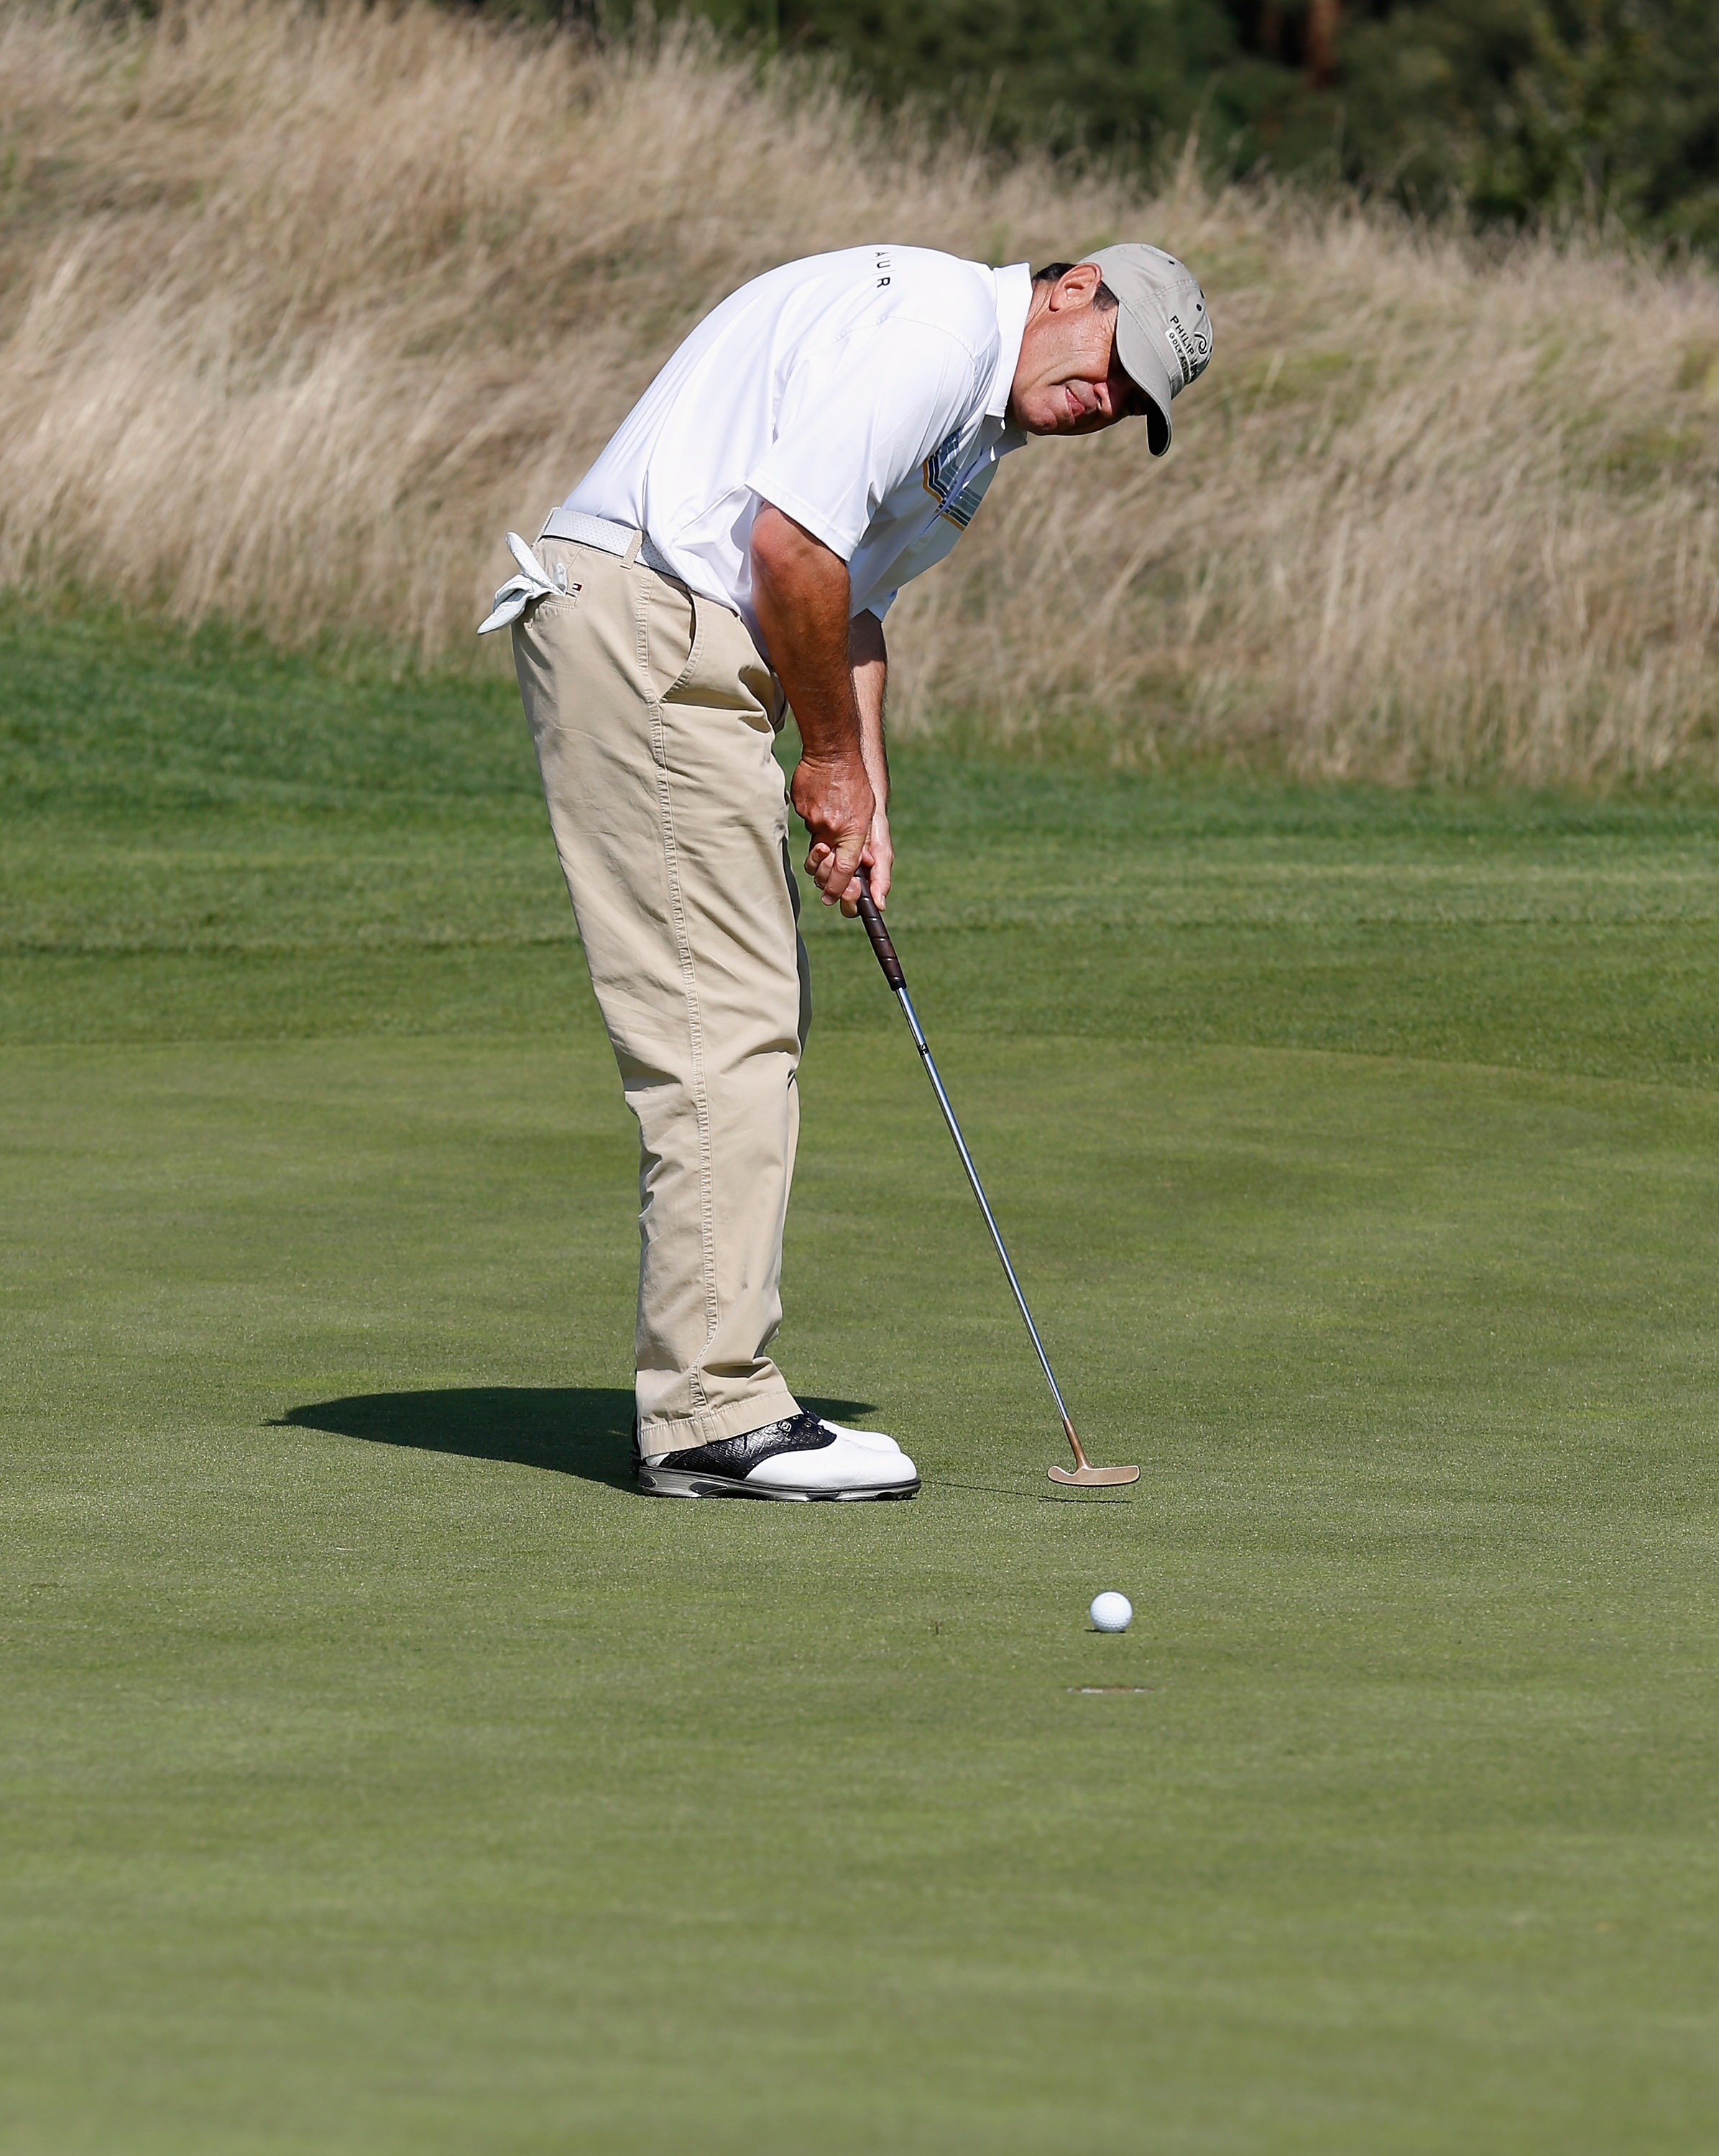 WINSTONgolf Senior Open - Day Two